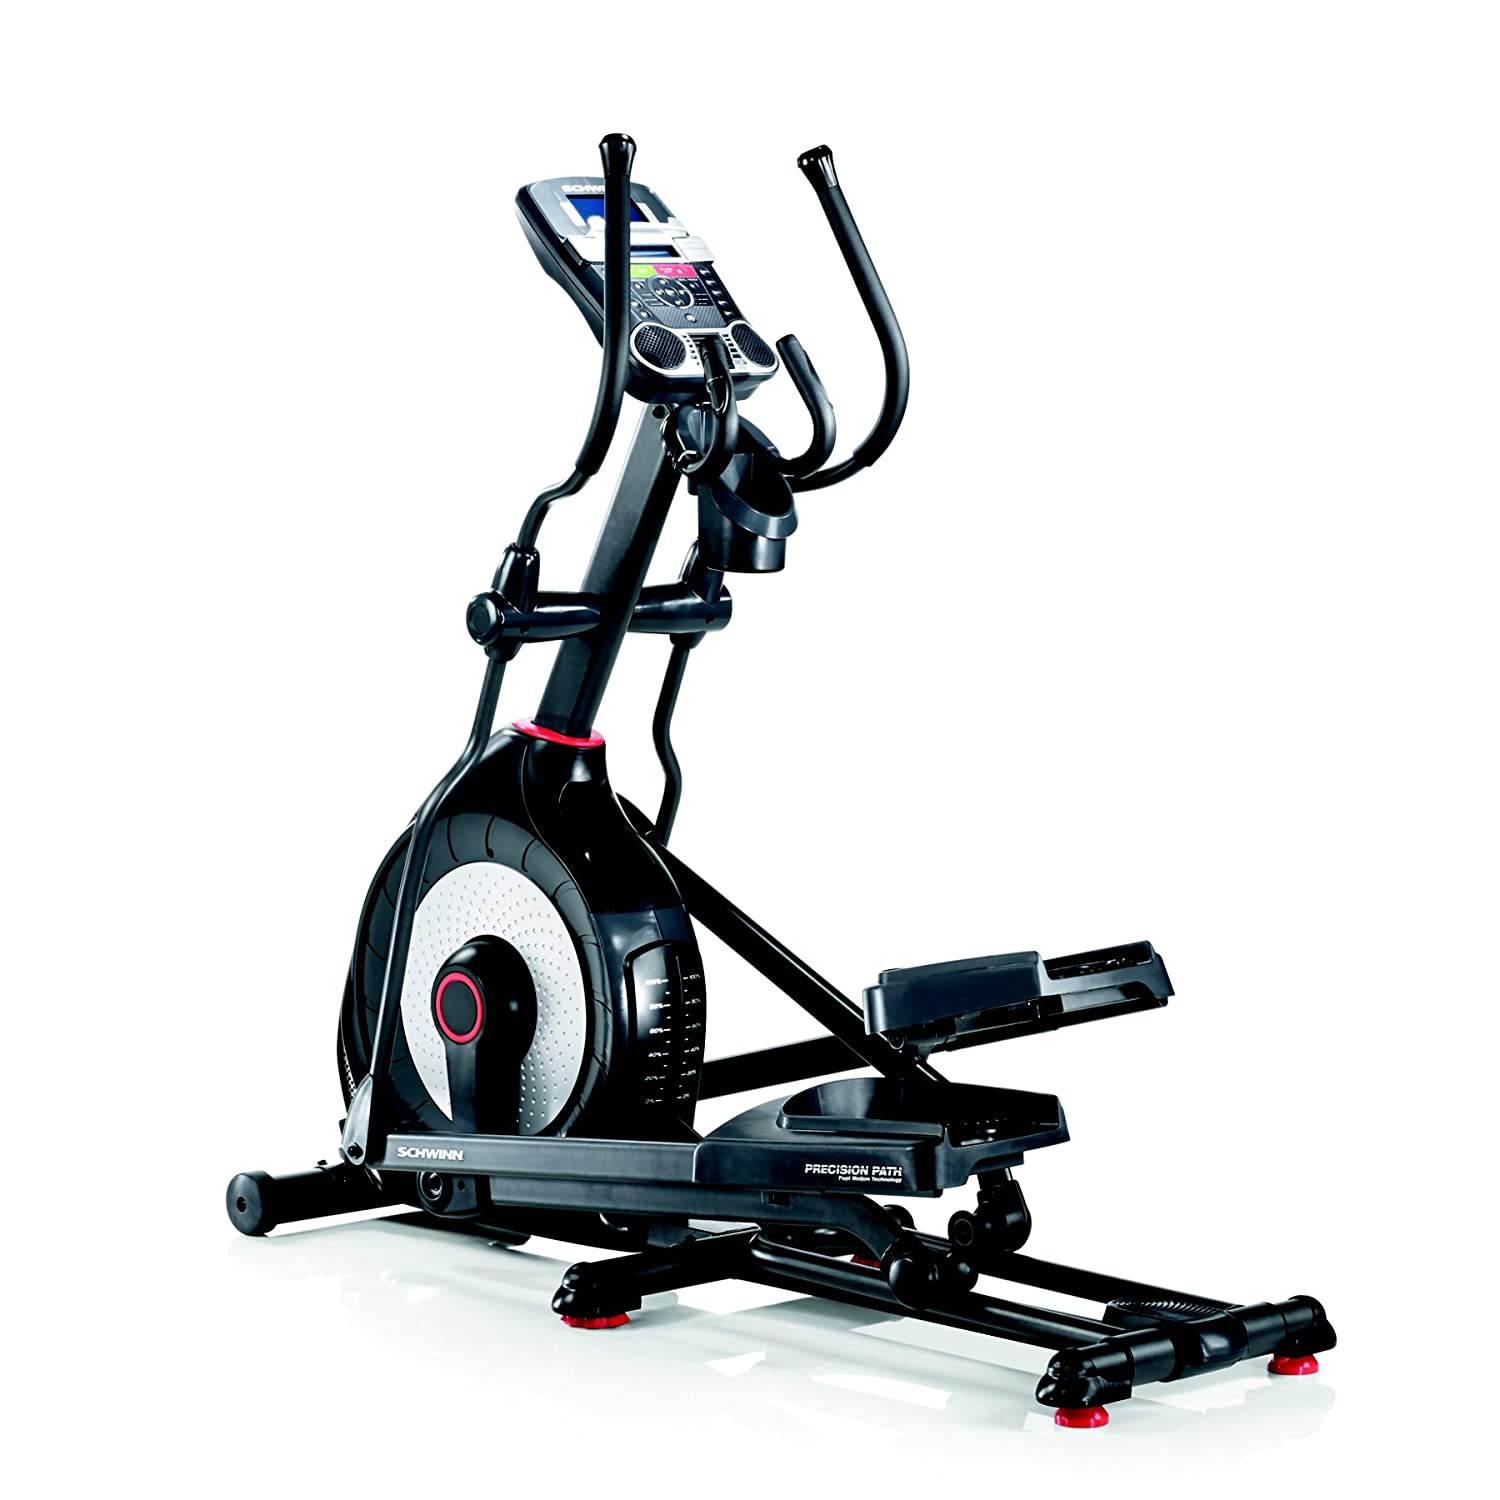 70f8789a0cf4 As you may already know, Schwinn is a strong company and the Schwinn 470 Elliptical  Machine makes a perfect showing in its price range. This trainer is a ...